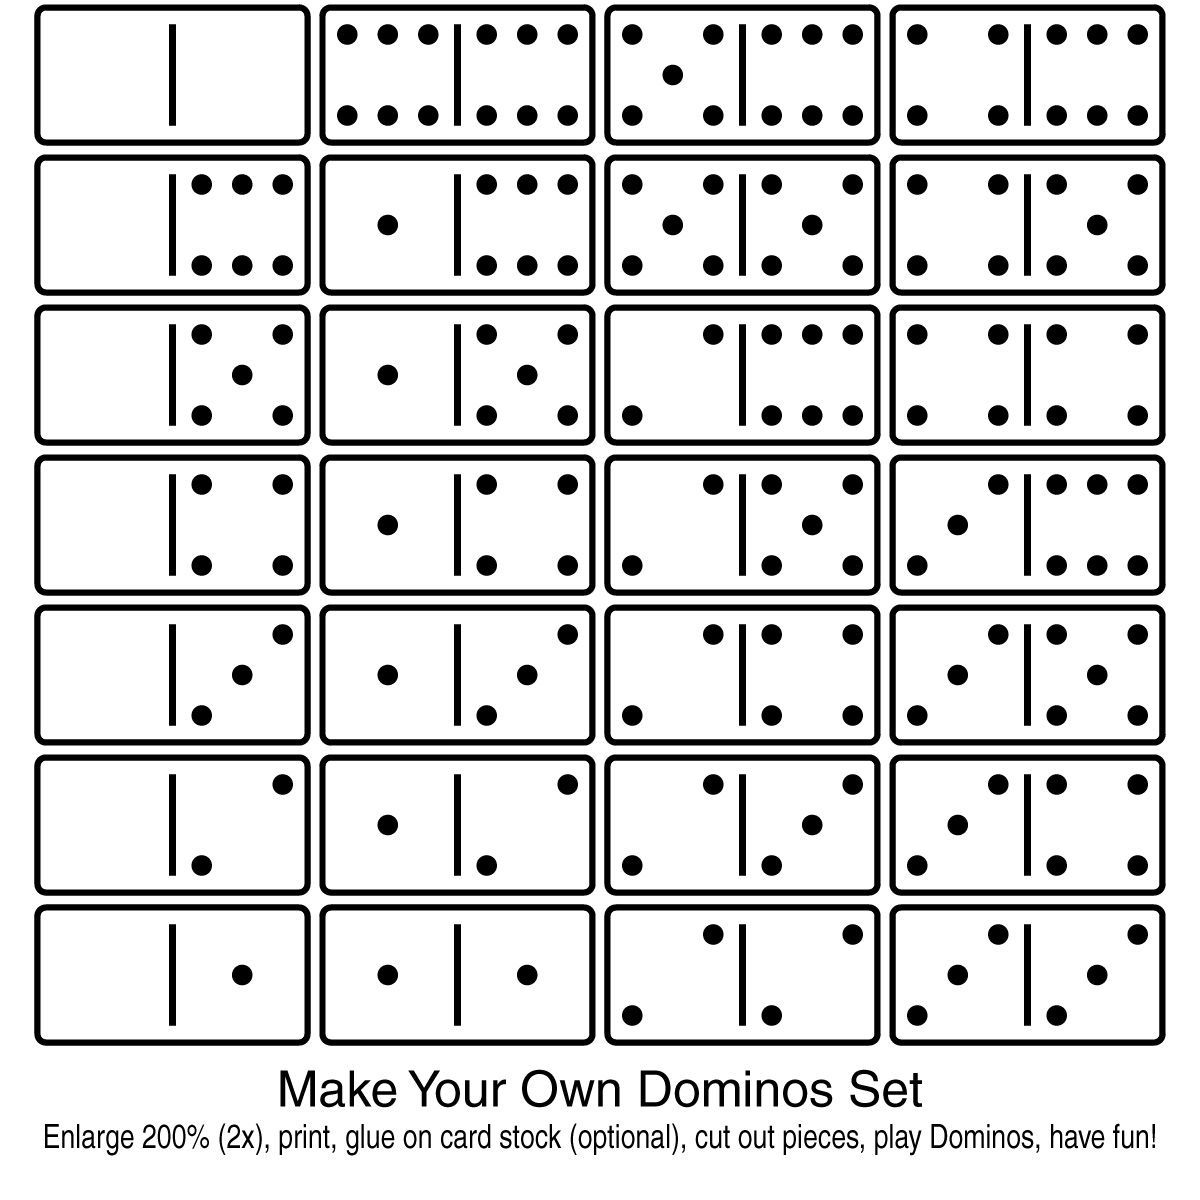 Pin by Tracy Jenkins on My wishlist | Pinterest | Games, Math and ...